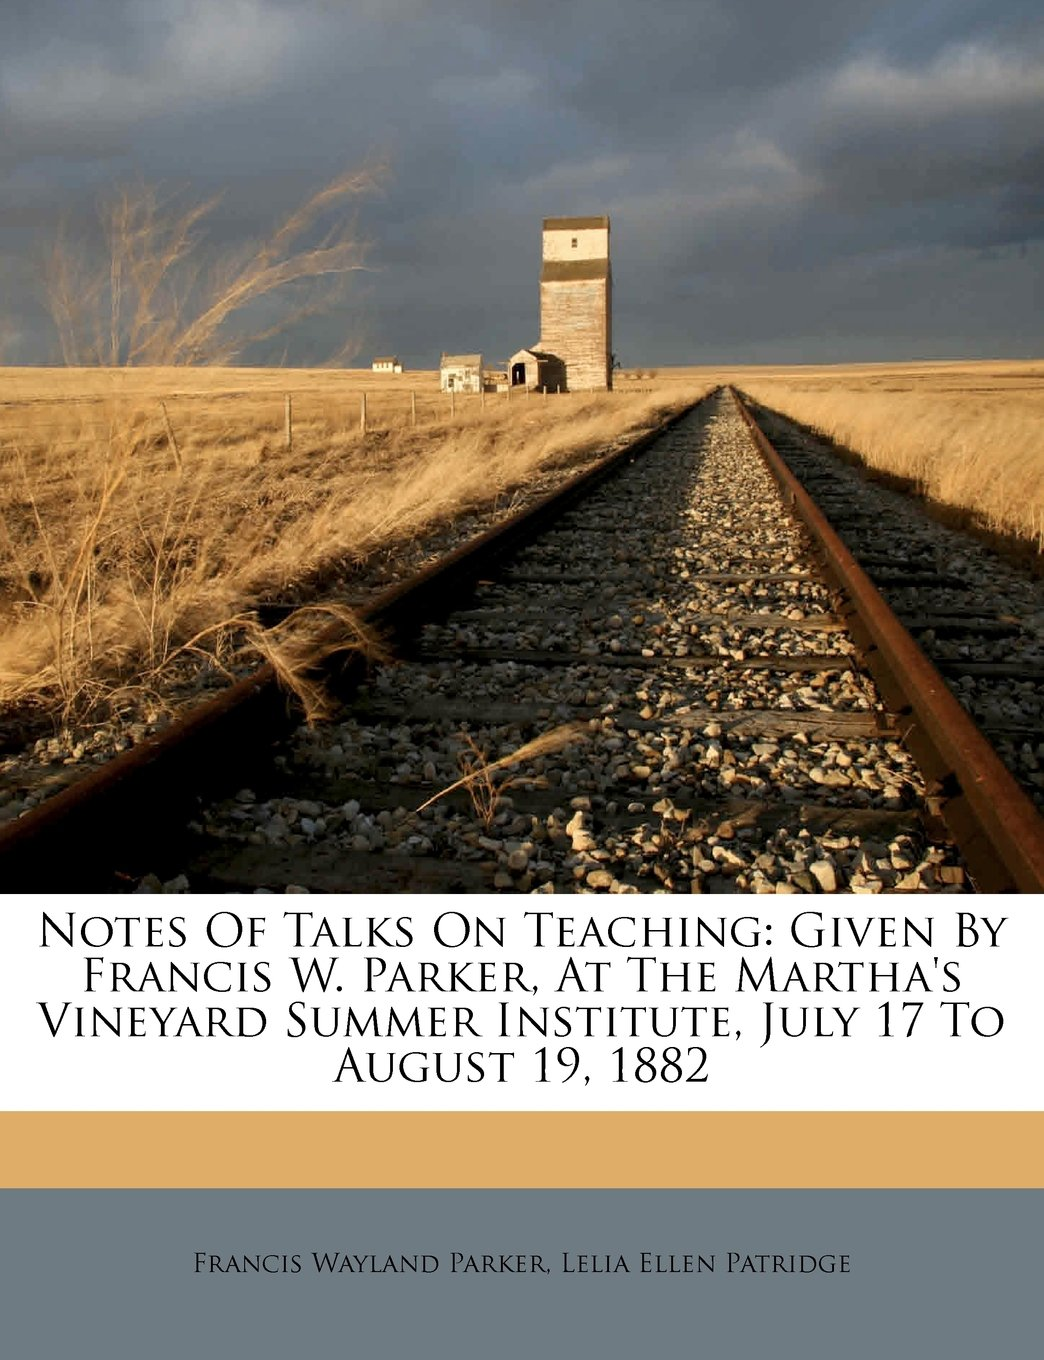 Download Notes Of Talks On Teaching: Given By Francis W. Parker, At The Martha's Vineyard Summer Institute, July 17 To August 19, 1882 pdf epub